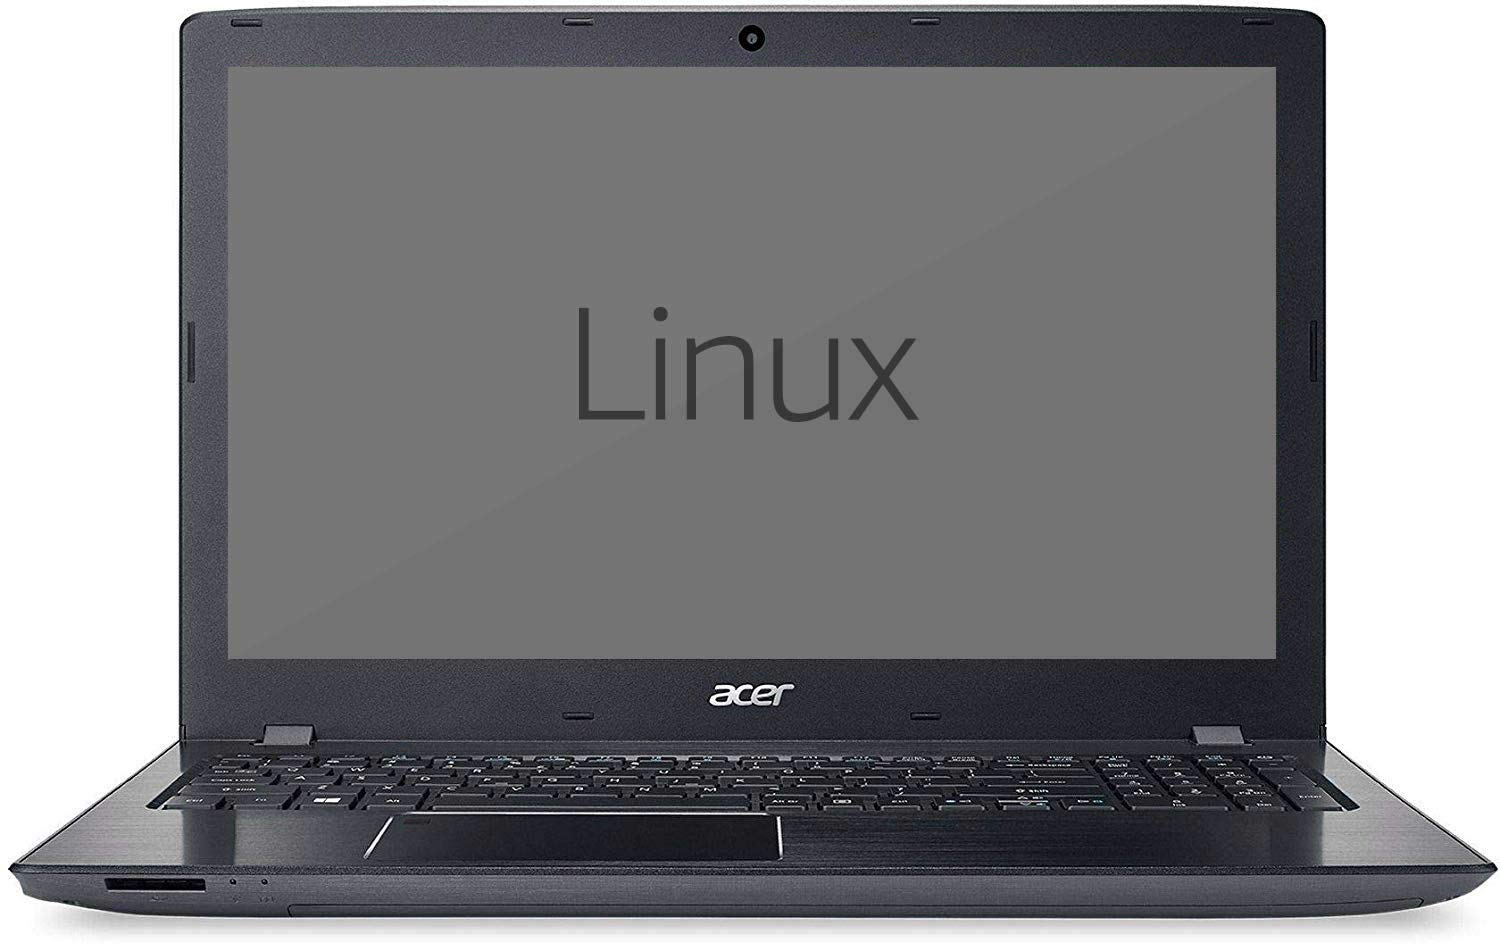 Buy Acer Aspire E15 E5-576 Intel Core i3 6th gen 15.6-inch Laptop (6006U  4GB/1TB HDD/Linux/Black/2.23kg) Online at Low Prices in India - Amazon.in